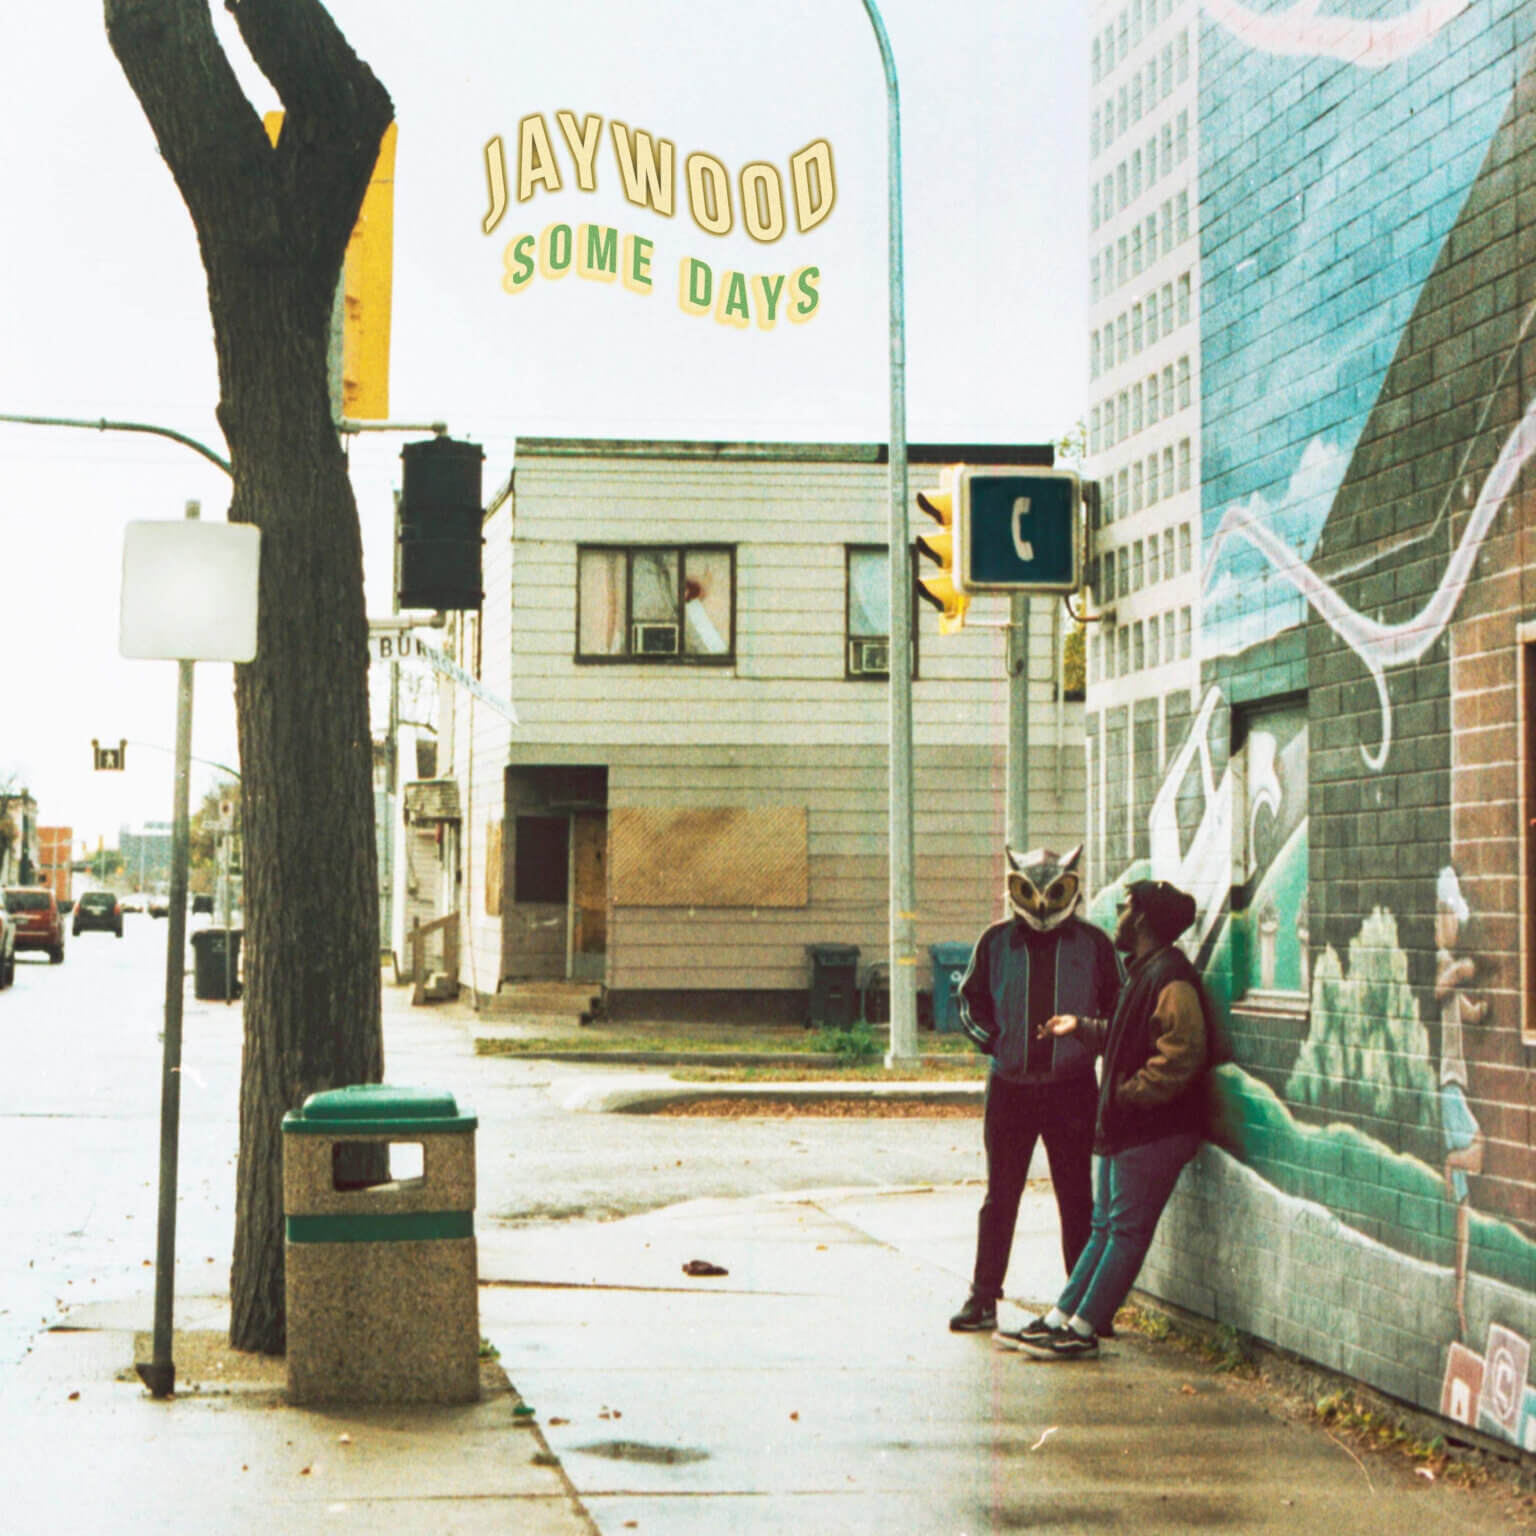 JayWood is the musical project of Jeremy Haywood-Smith from Winnipeg, MB. His debut album Some Days comes out April 23, 2021